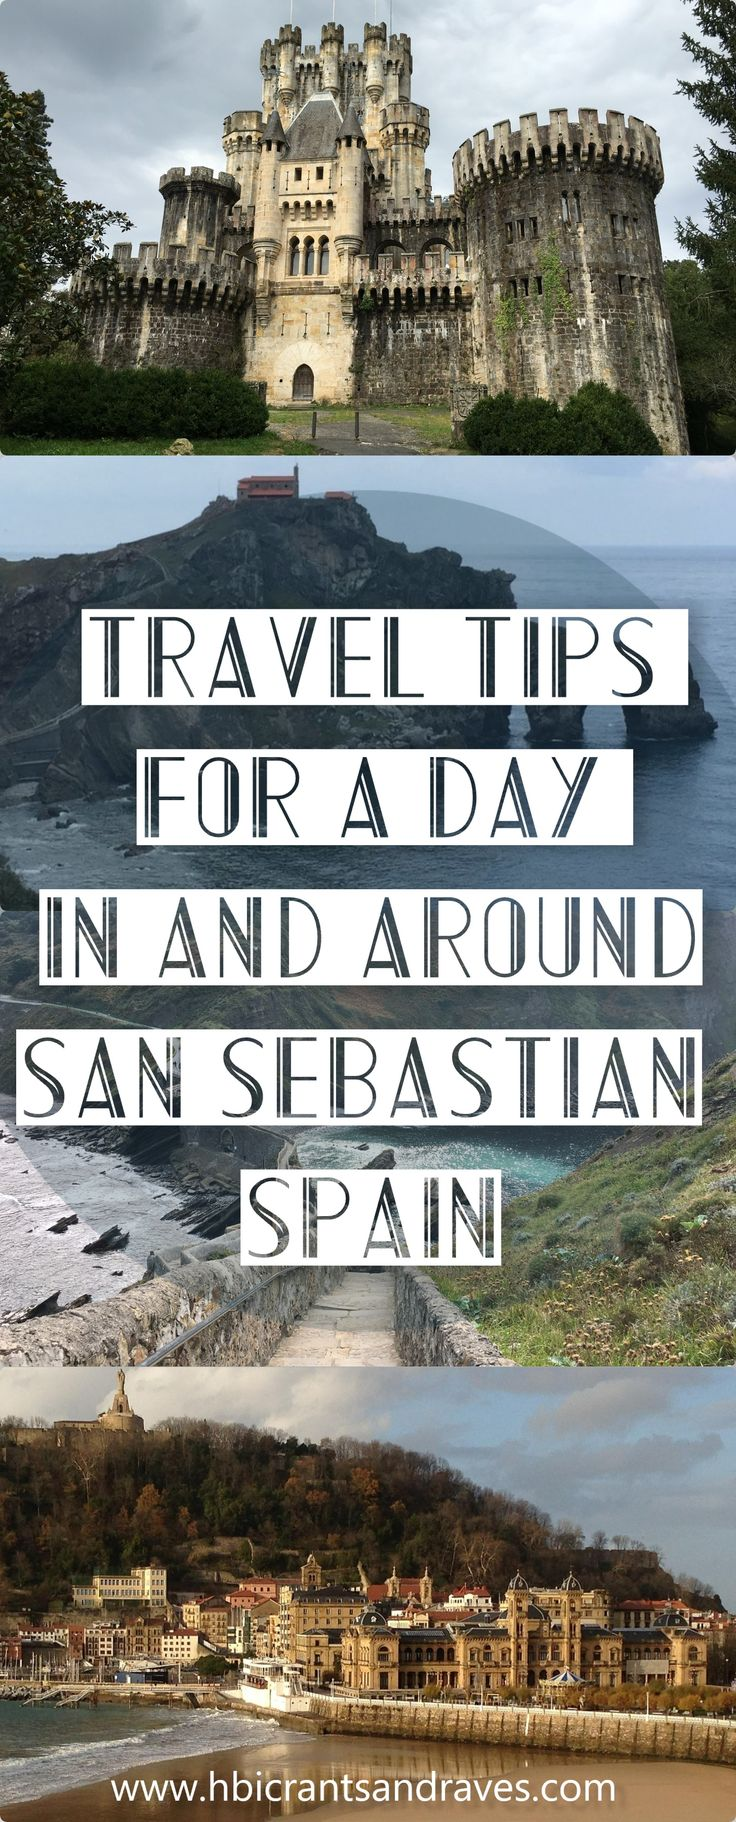 Travel Tips for Butron Castle, the Hermitage of San Juan, & San Sabastian, Spain